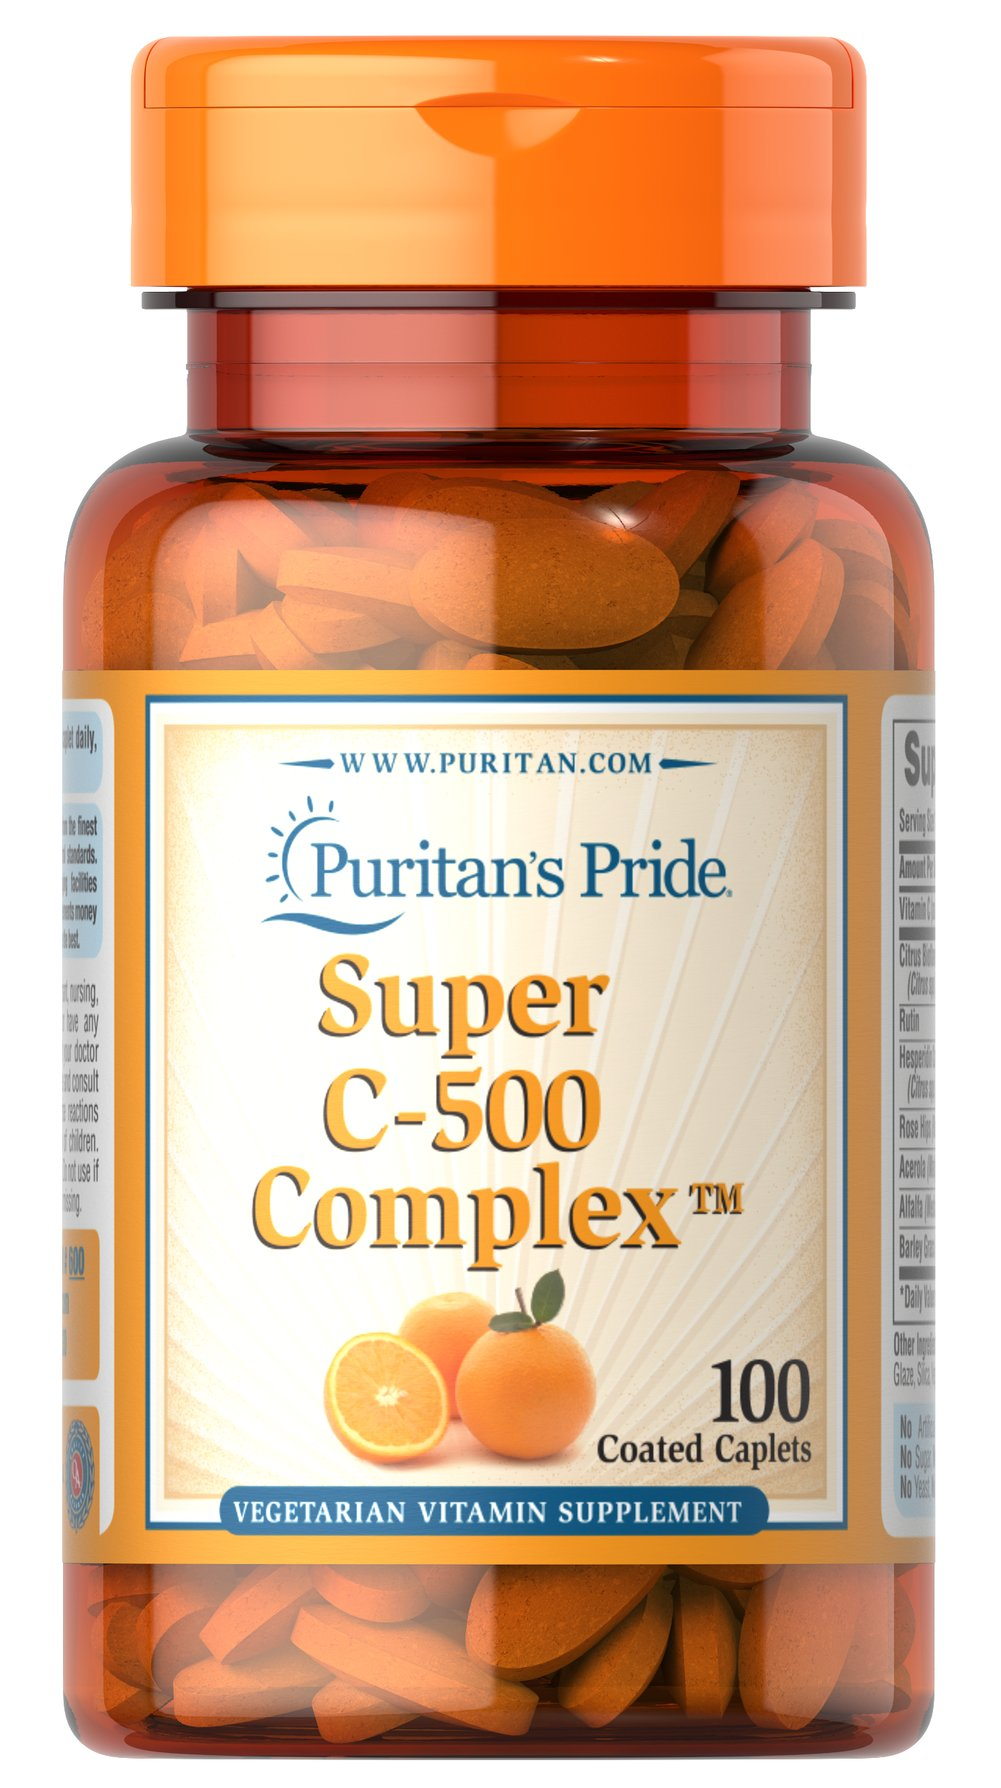 Vitamin C-500 Complex  100 Coated Caplets 500 mg $12.59